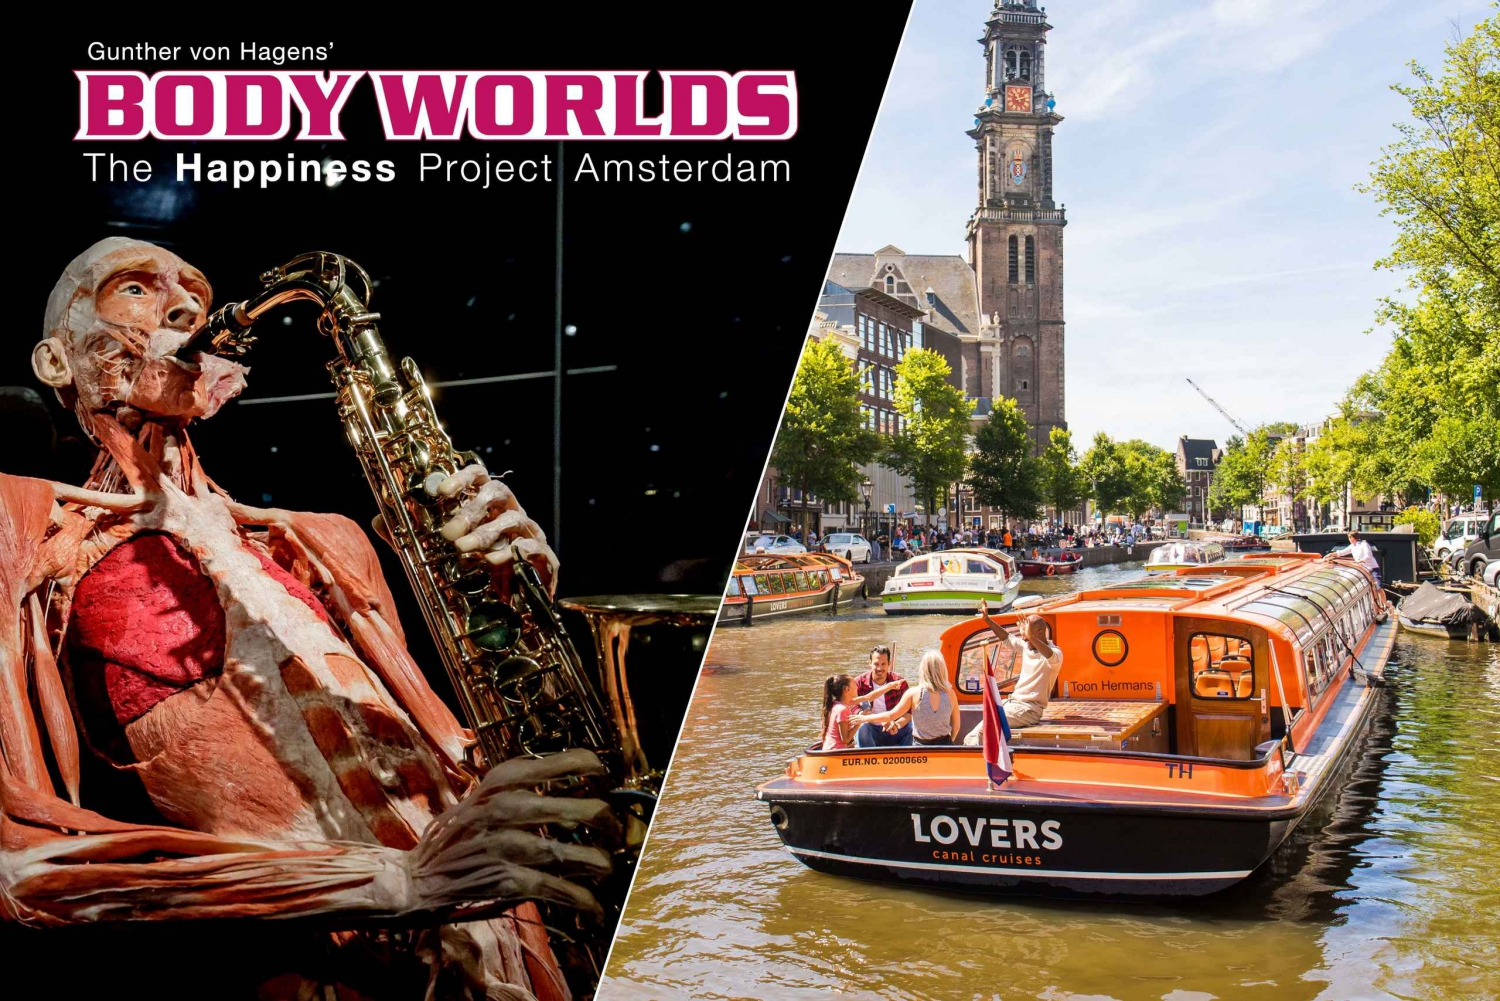 Body Worlds Exhibition and Canal Cruise